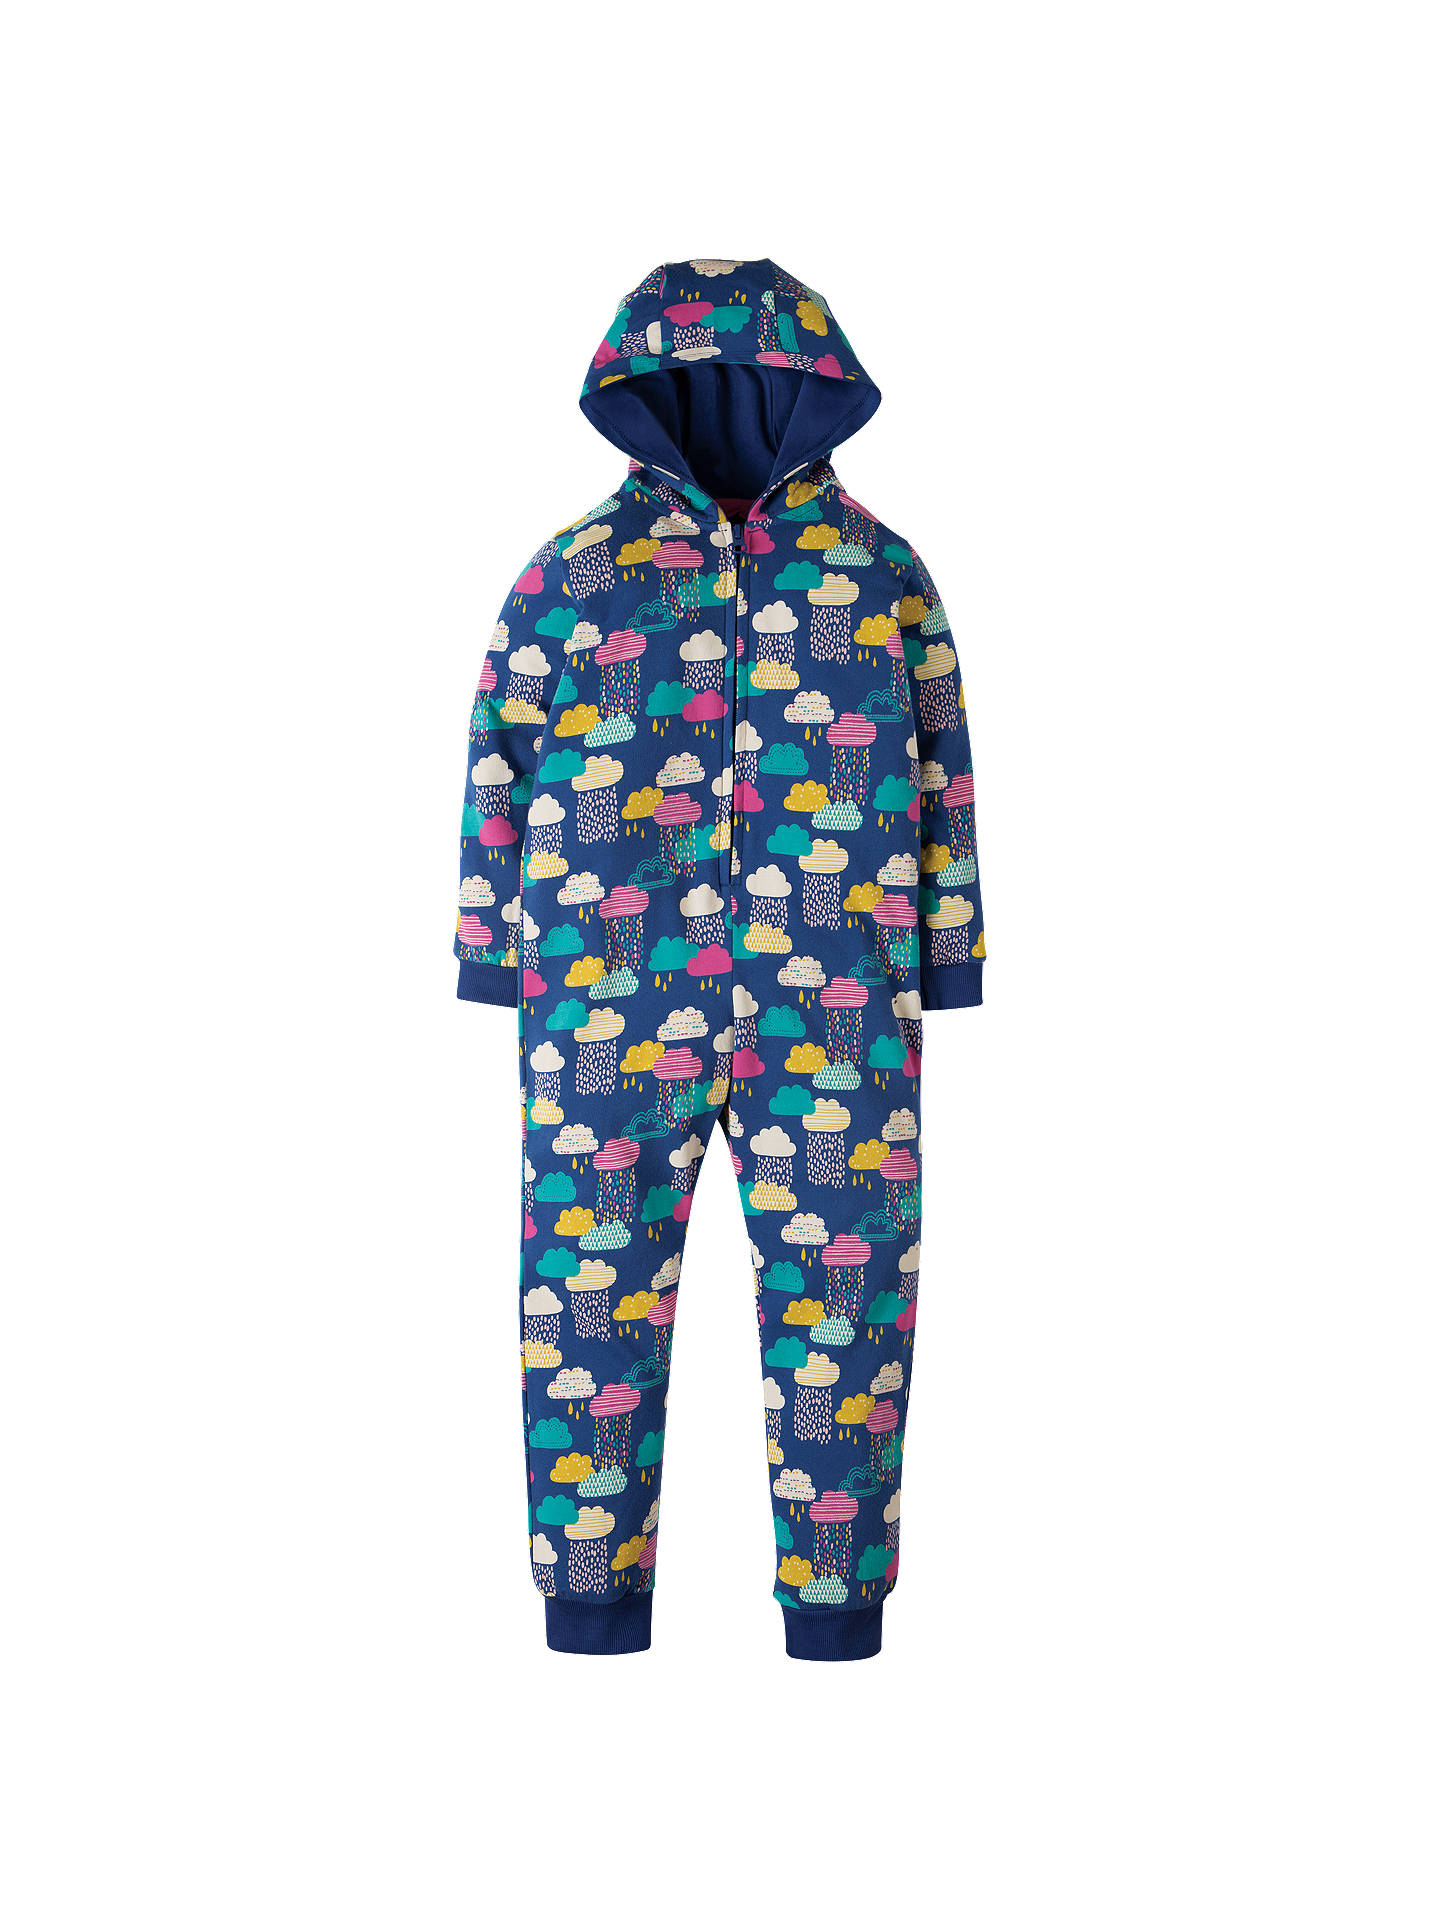 dcaeedb9f Buy Frugi Organic Children's Raincloud Print Onesie, Multi, 3-4 years  Online at ...